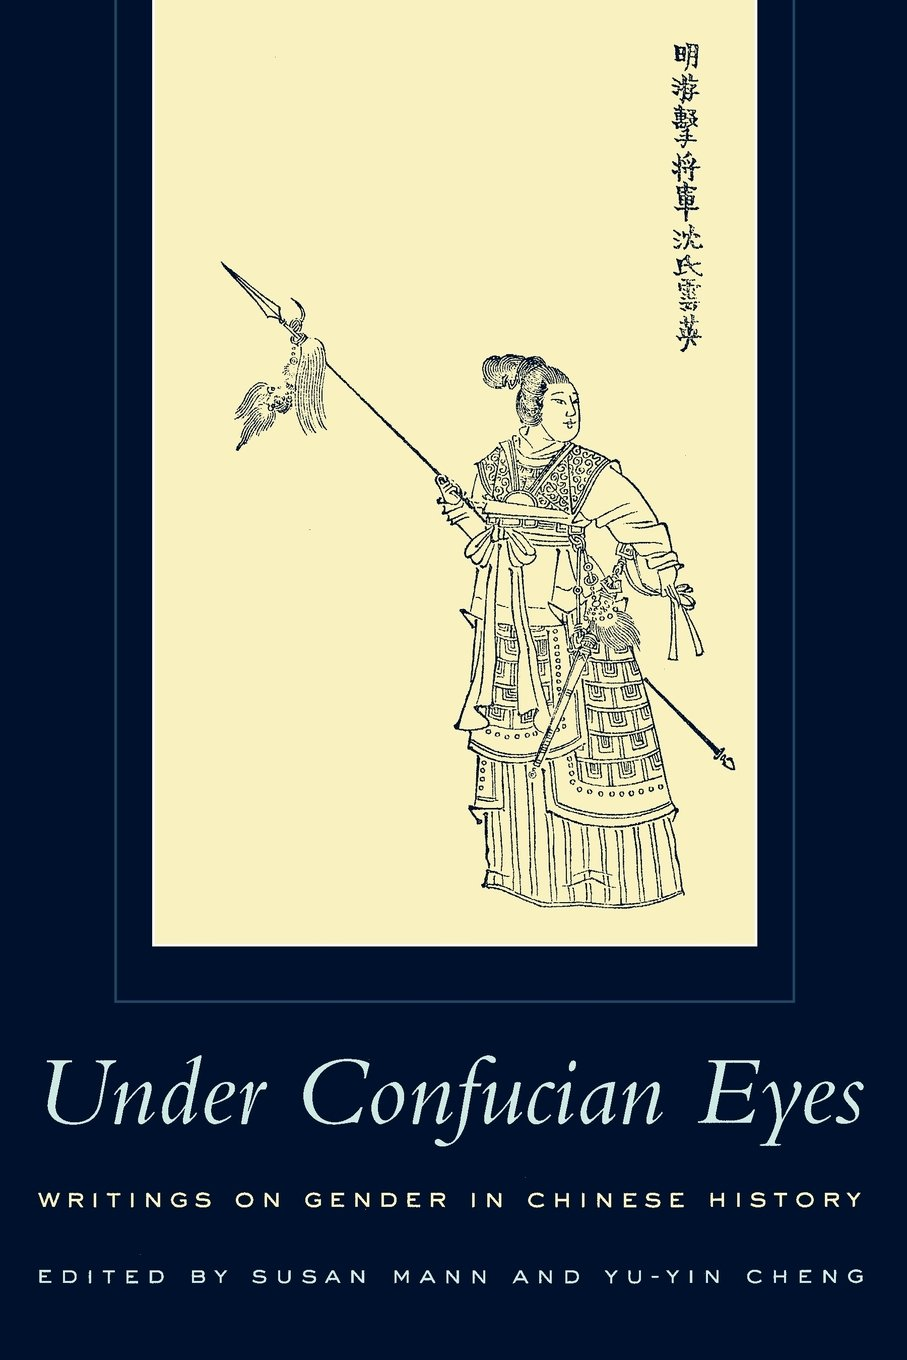 Under Confucian Eyes: Writings on Gender in Chinese History: Amazon.co.uk:  Susan Mann: 9780520222762: Books